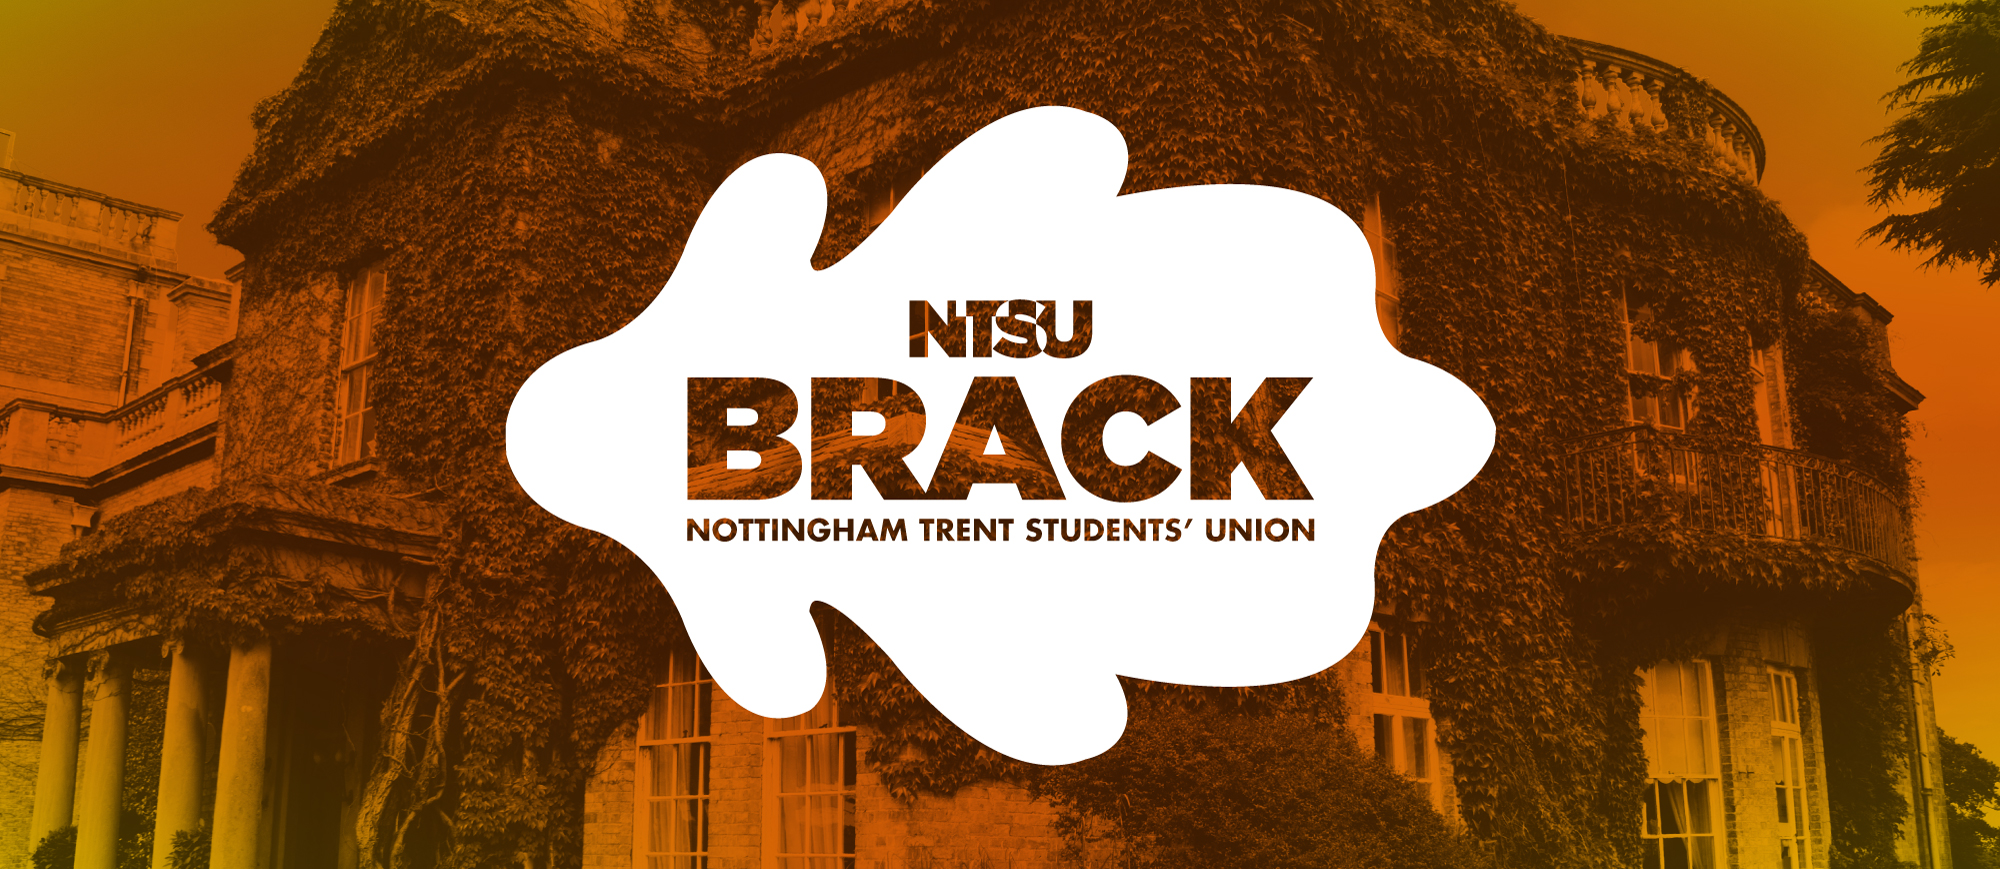 NTSU Brack: Nottingham Trent Students' Union